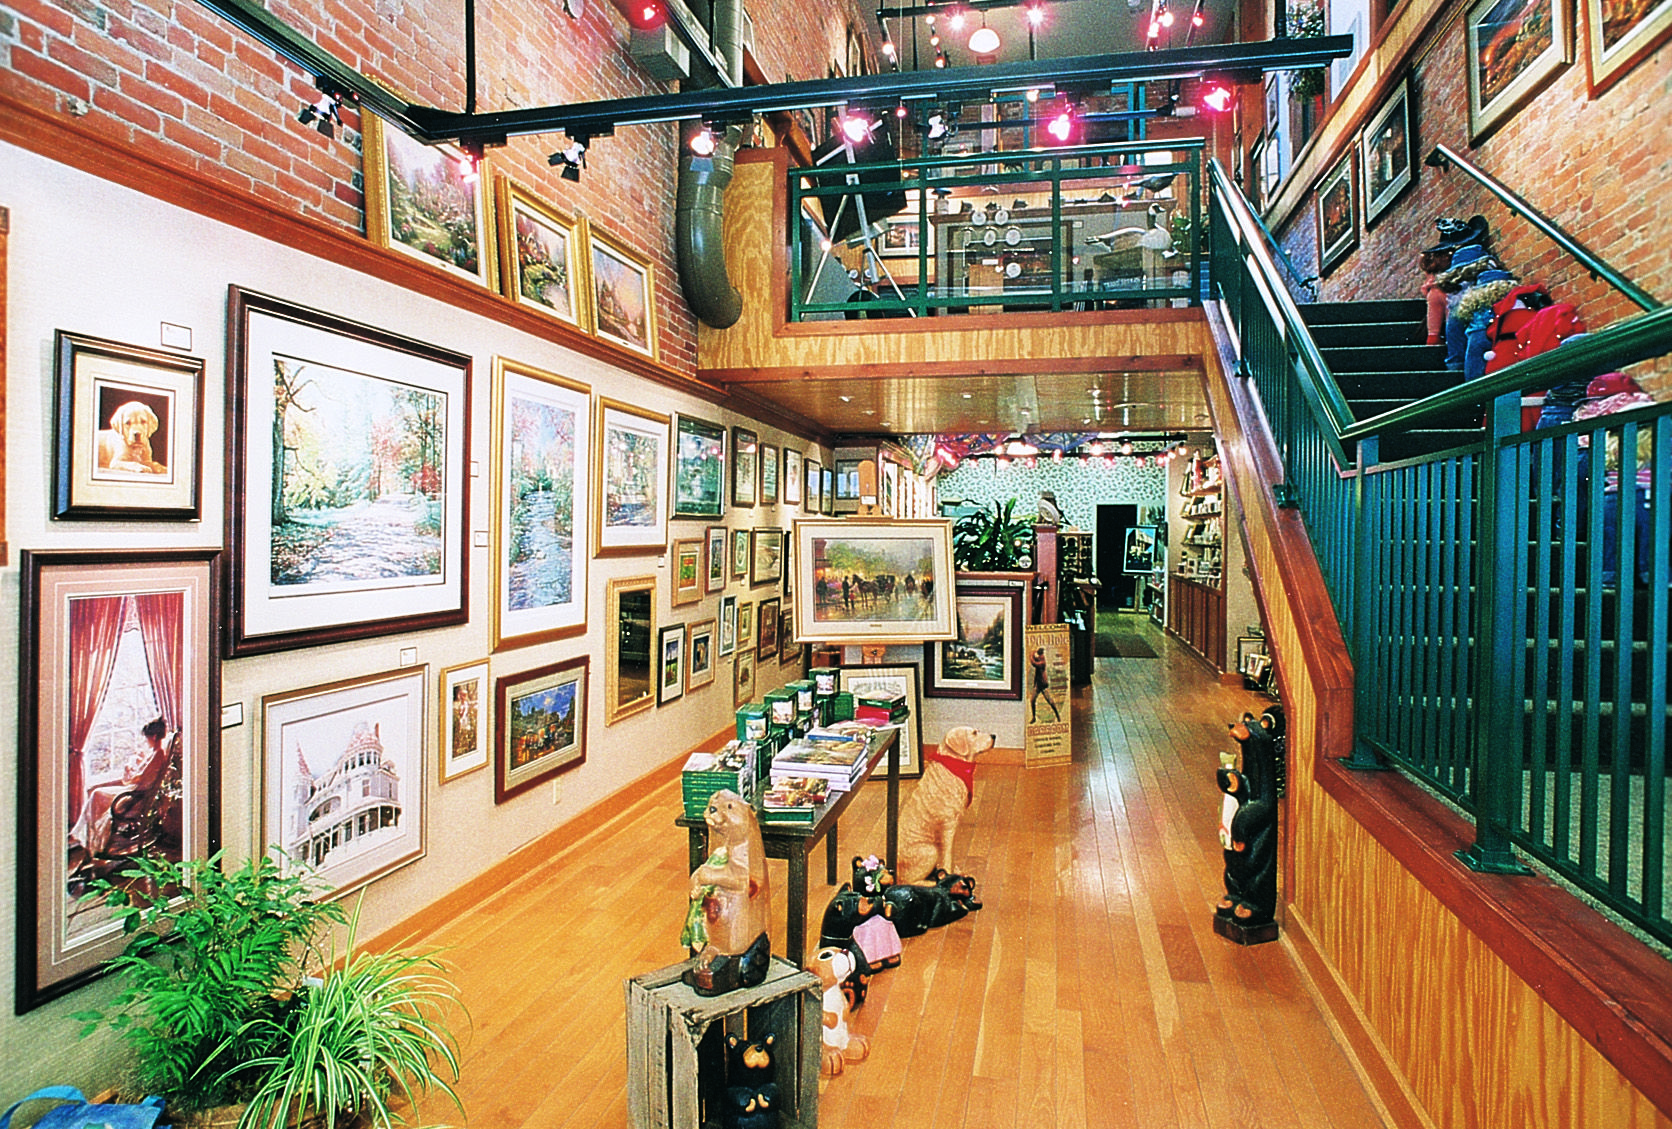 Rieck's Gallery Gallery, Findlay, Hand crafted gifts